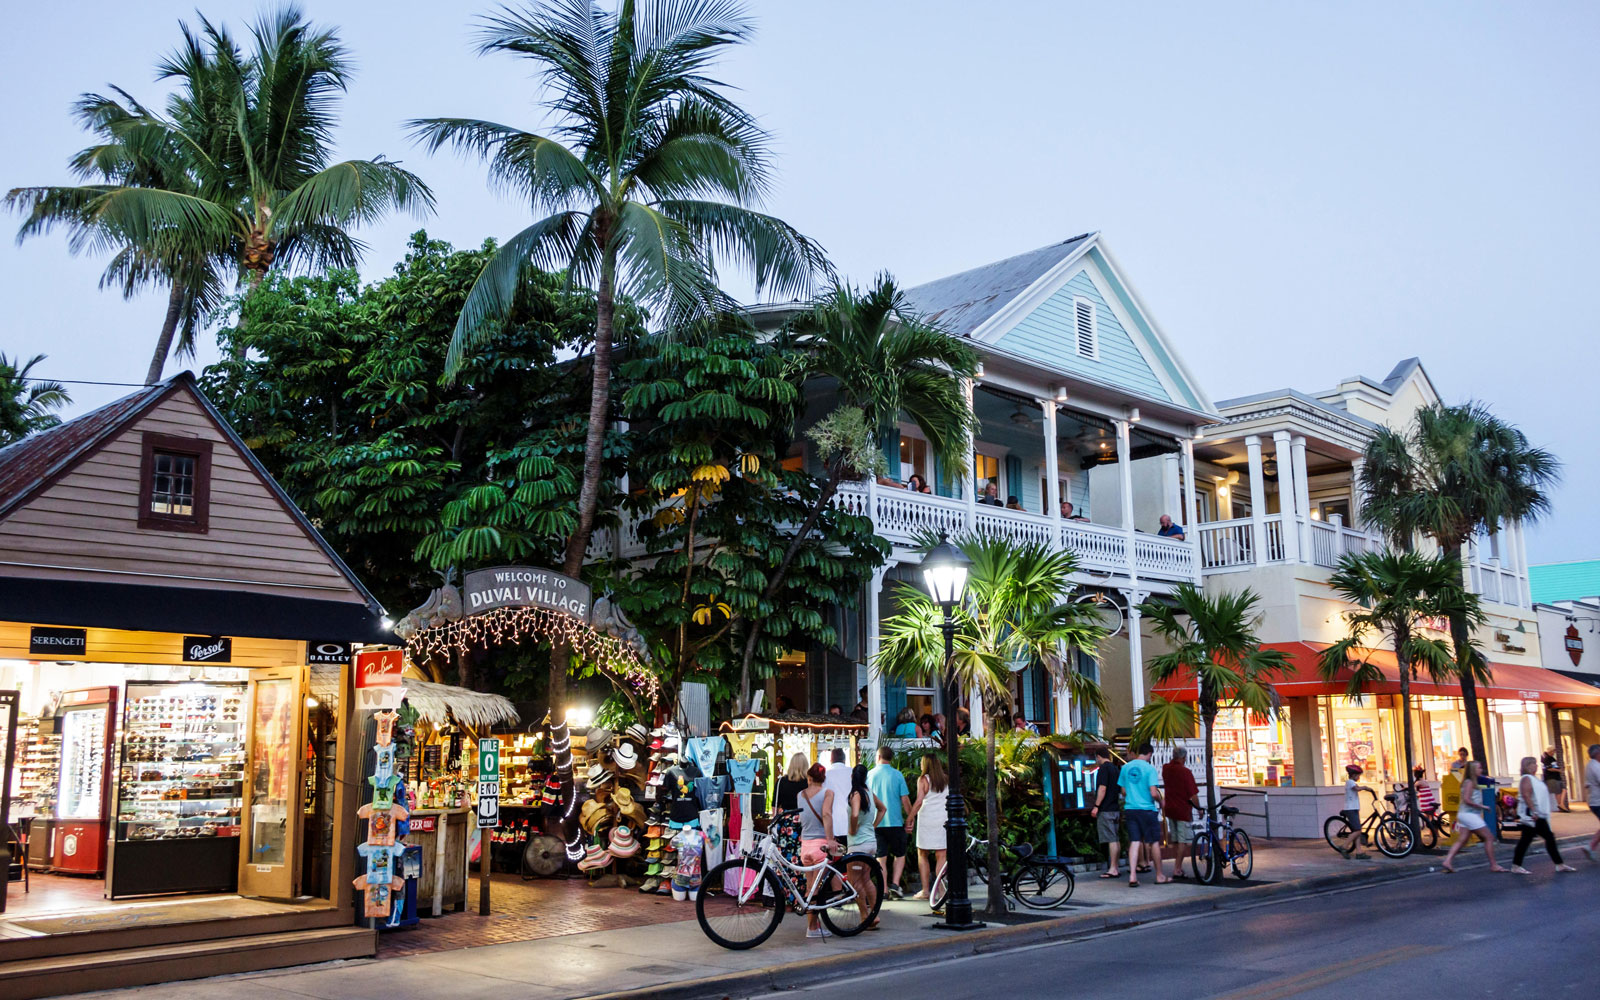 Key West at night